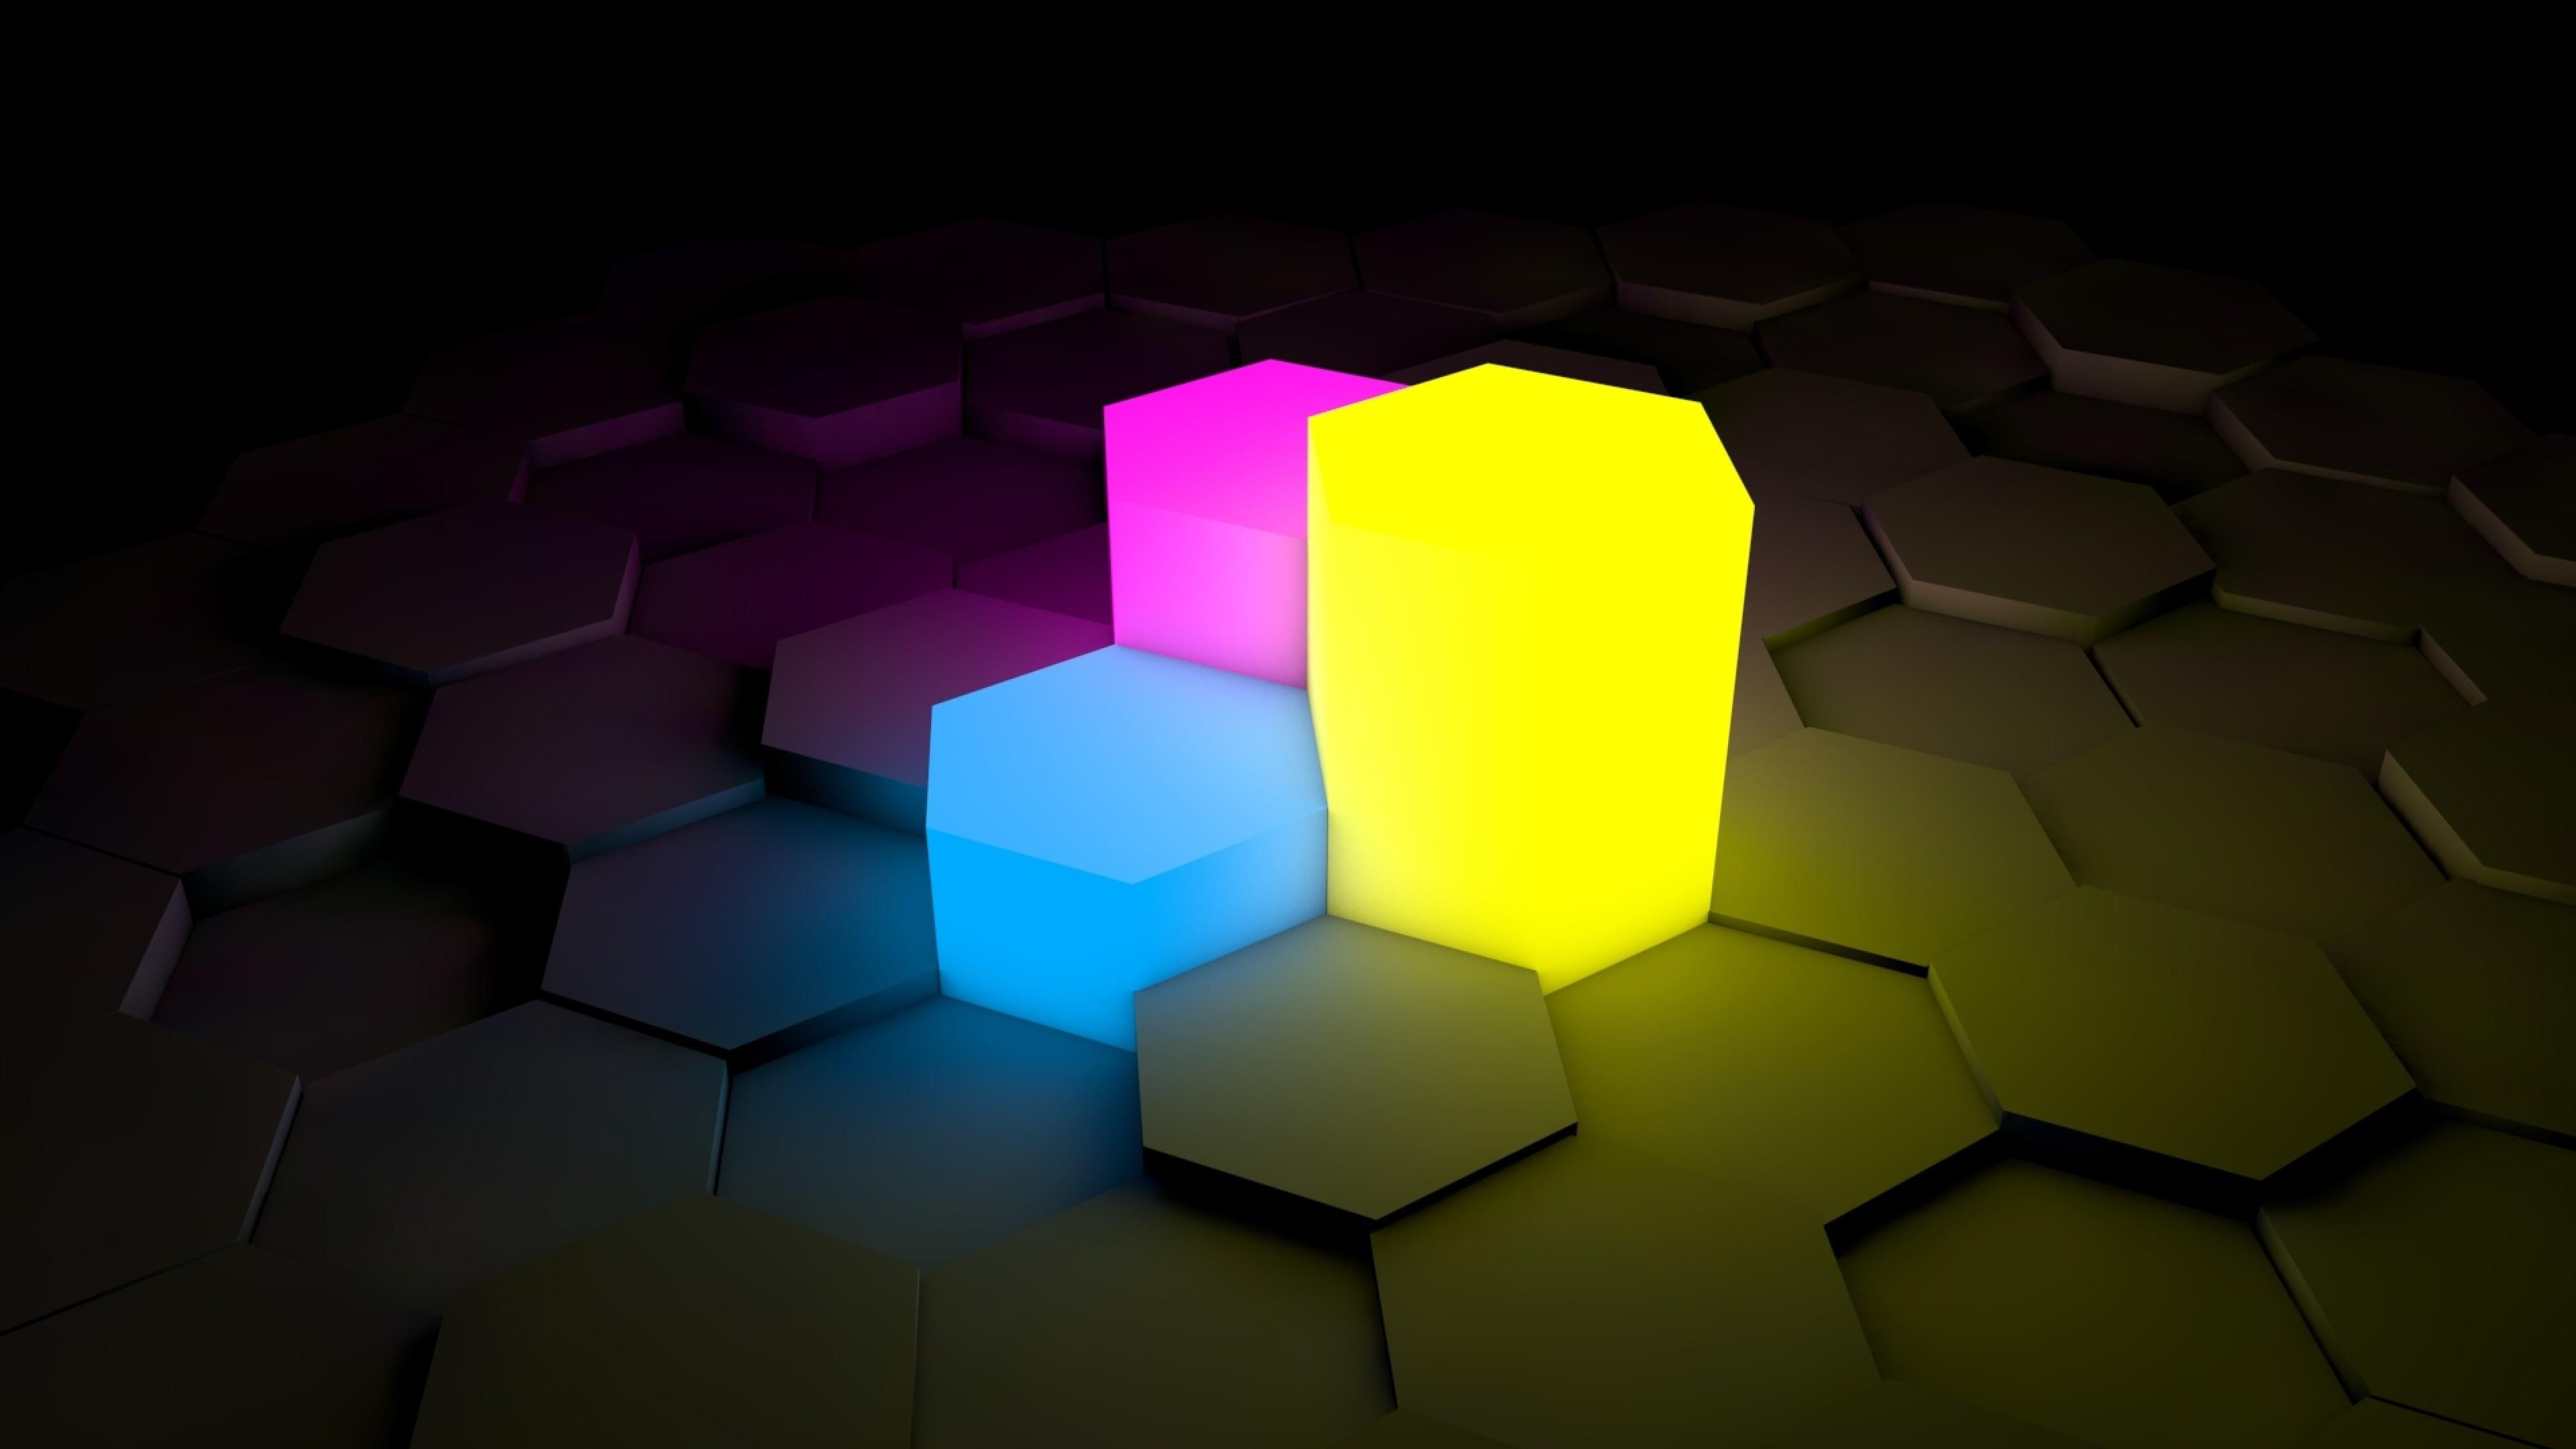 3d Blocks Blue Pink Yellow Dark Abstract Hexagon Shining Shadow Focus Neon 4k Wallpaper Hdwallpape Neon Wallpaper Hexagon Wallpaper Wallpaper Pc